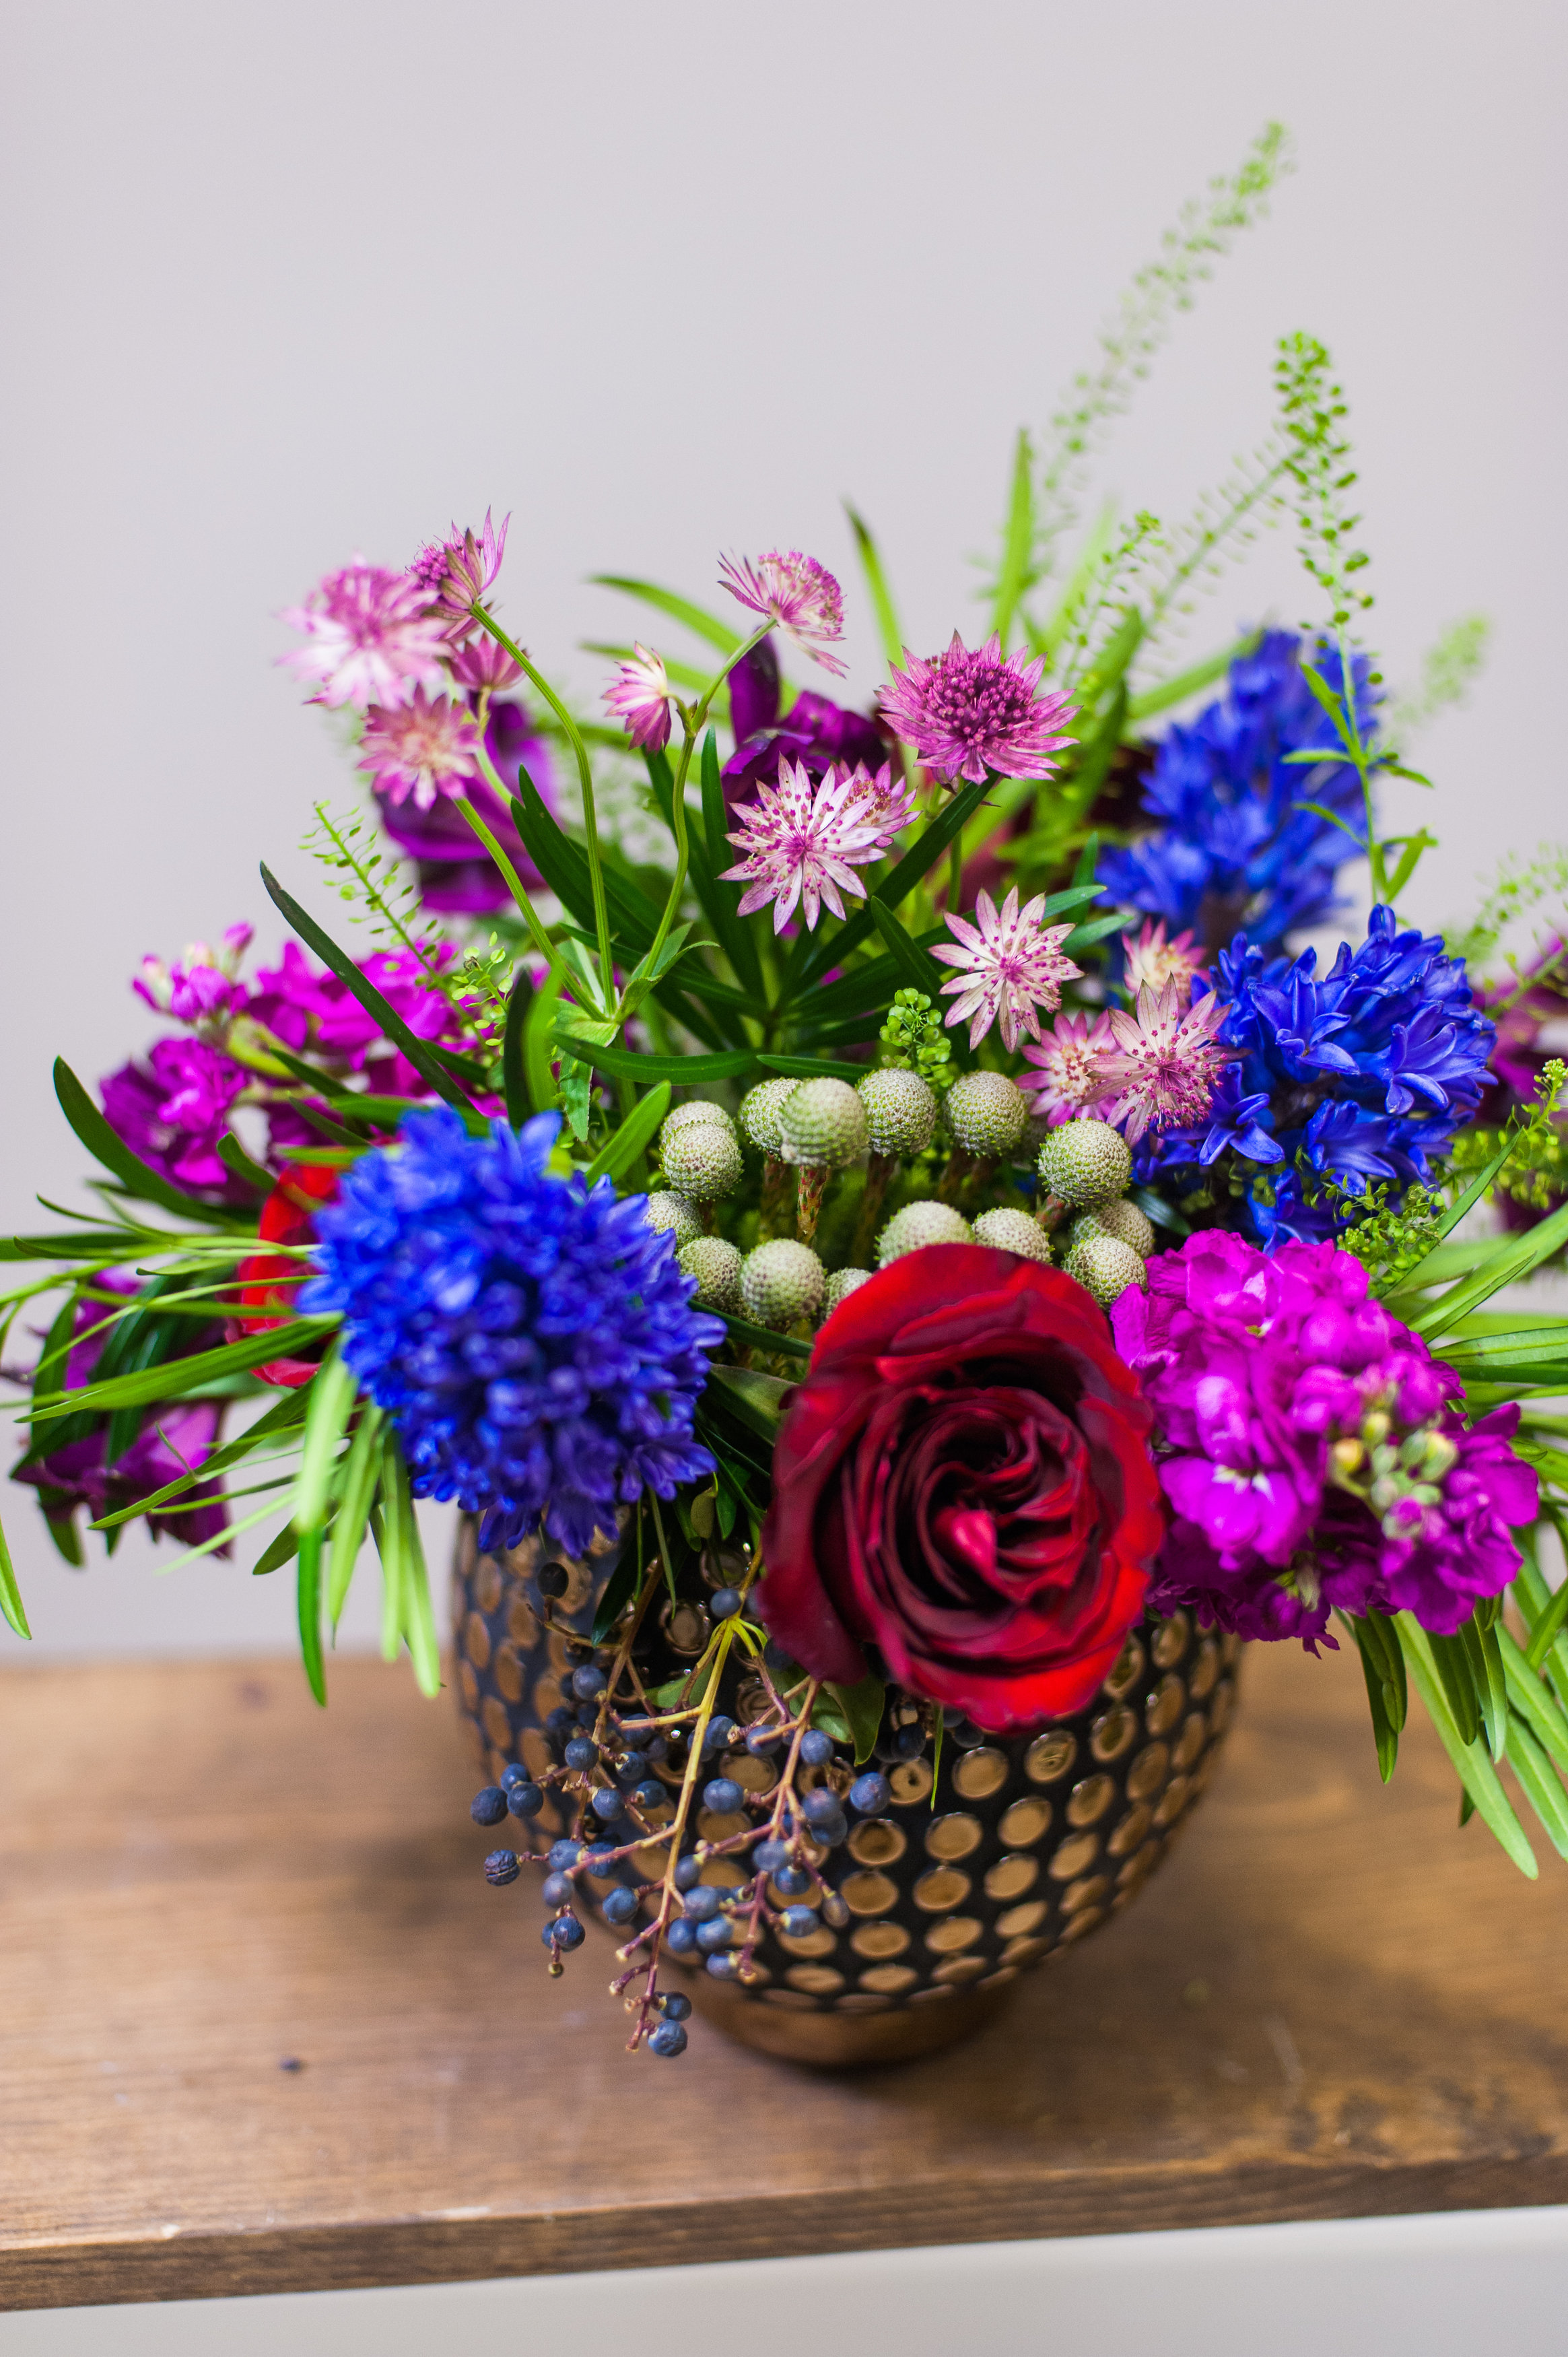 Here is a closer look at Option 1 - a hip copper vase, with a jewel tone color palette!